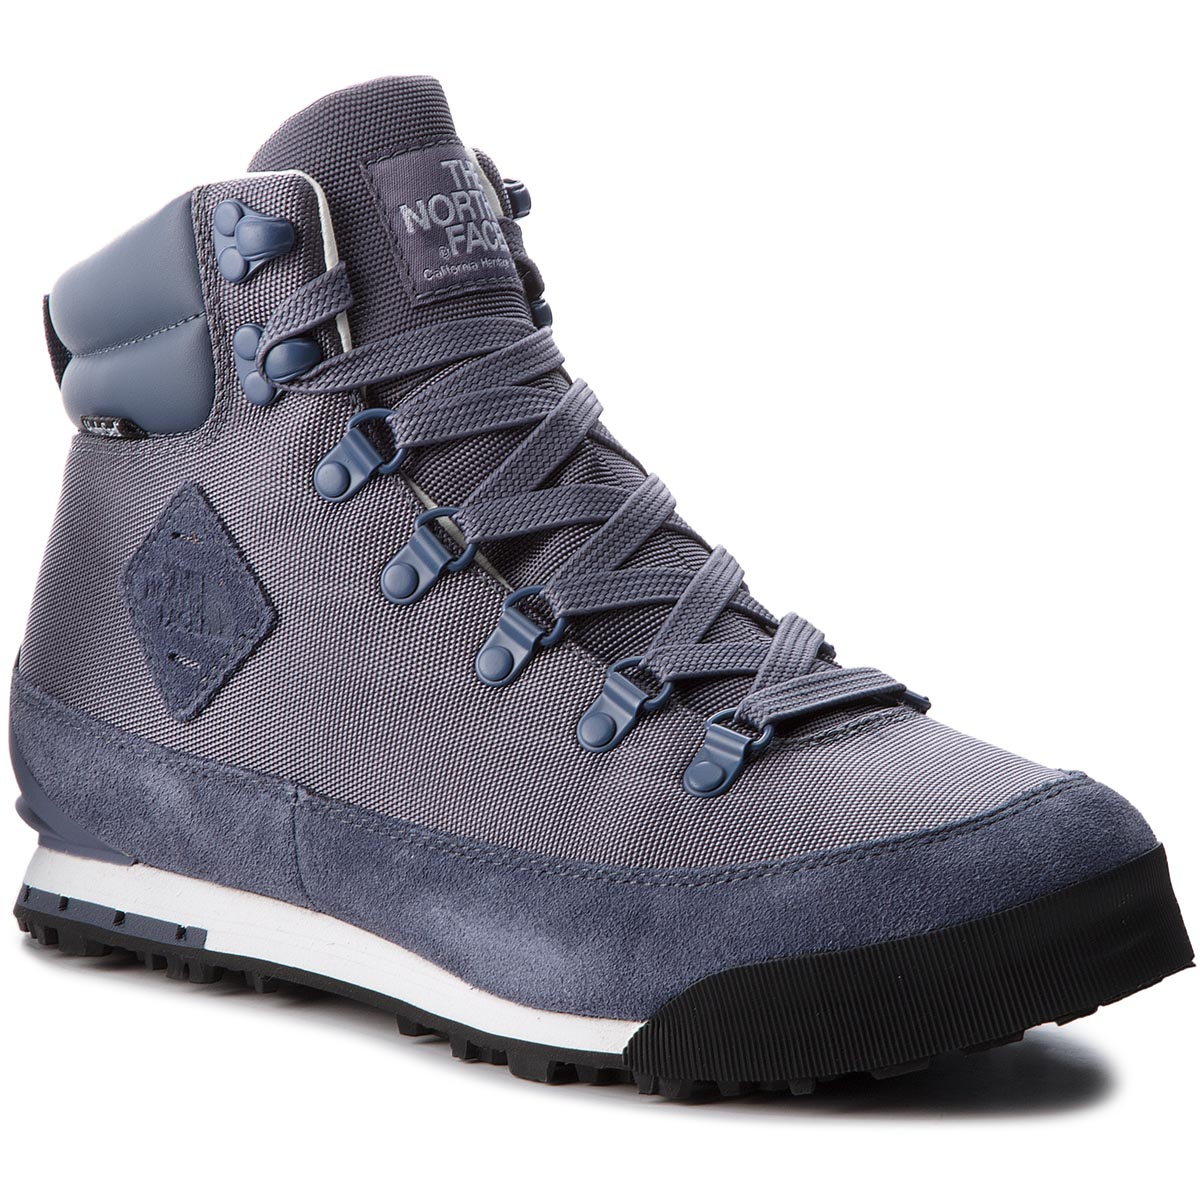 Trekkings THE NORTH FACE - Back-To-Berkeley Nl T0CKK45SJ Grisaille Grey/Tnf White